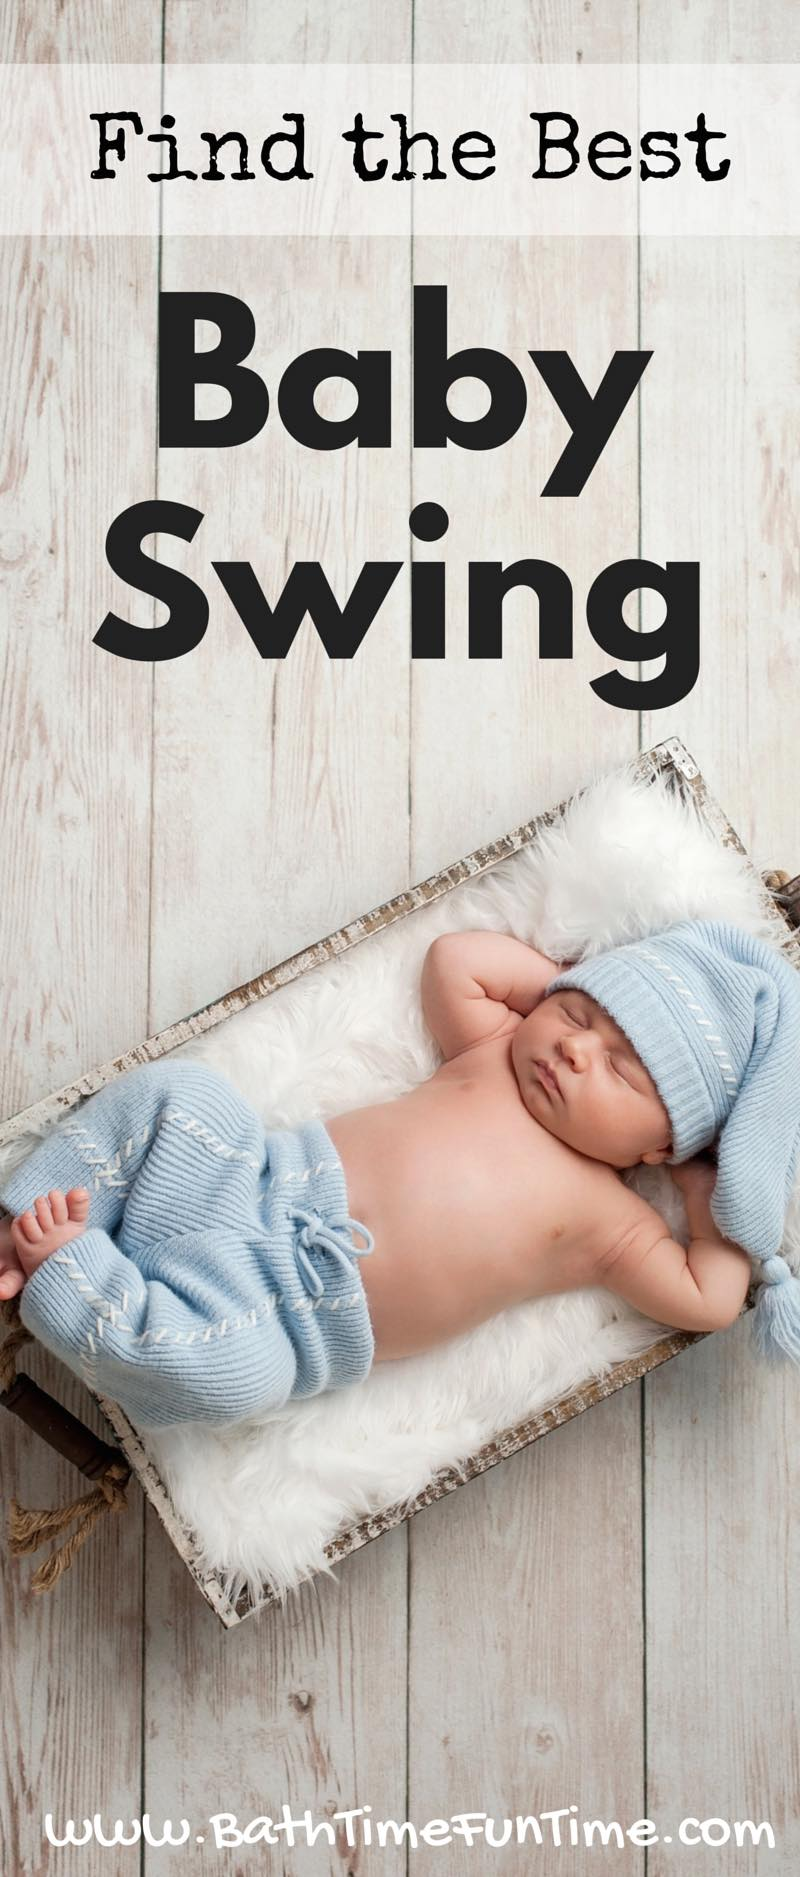 BEST baby swings 2015: Whether you're looking for the best baby shower gifts or are pregnant & need the best baby products, these are the BEST baby swings for 2015. I'm a mom who just bought a swing for my newborn baby to sleep in because she had terrible reflux. Worried about her sleeping comfortably & safely, I researched & found these to be the best baby swings - you'll even find a variety of prices available.